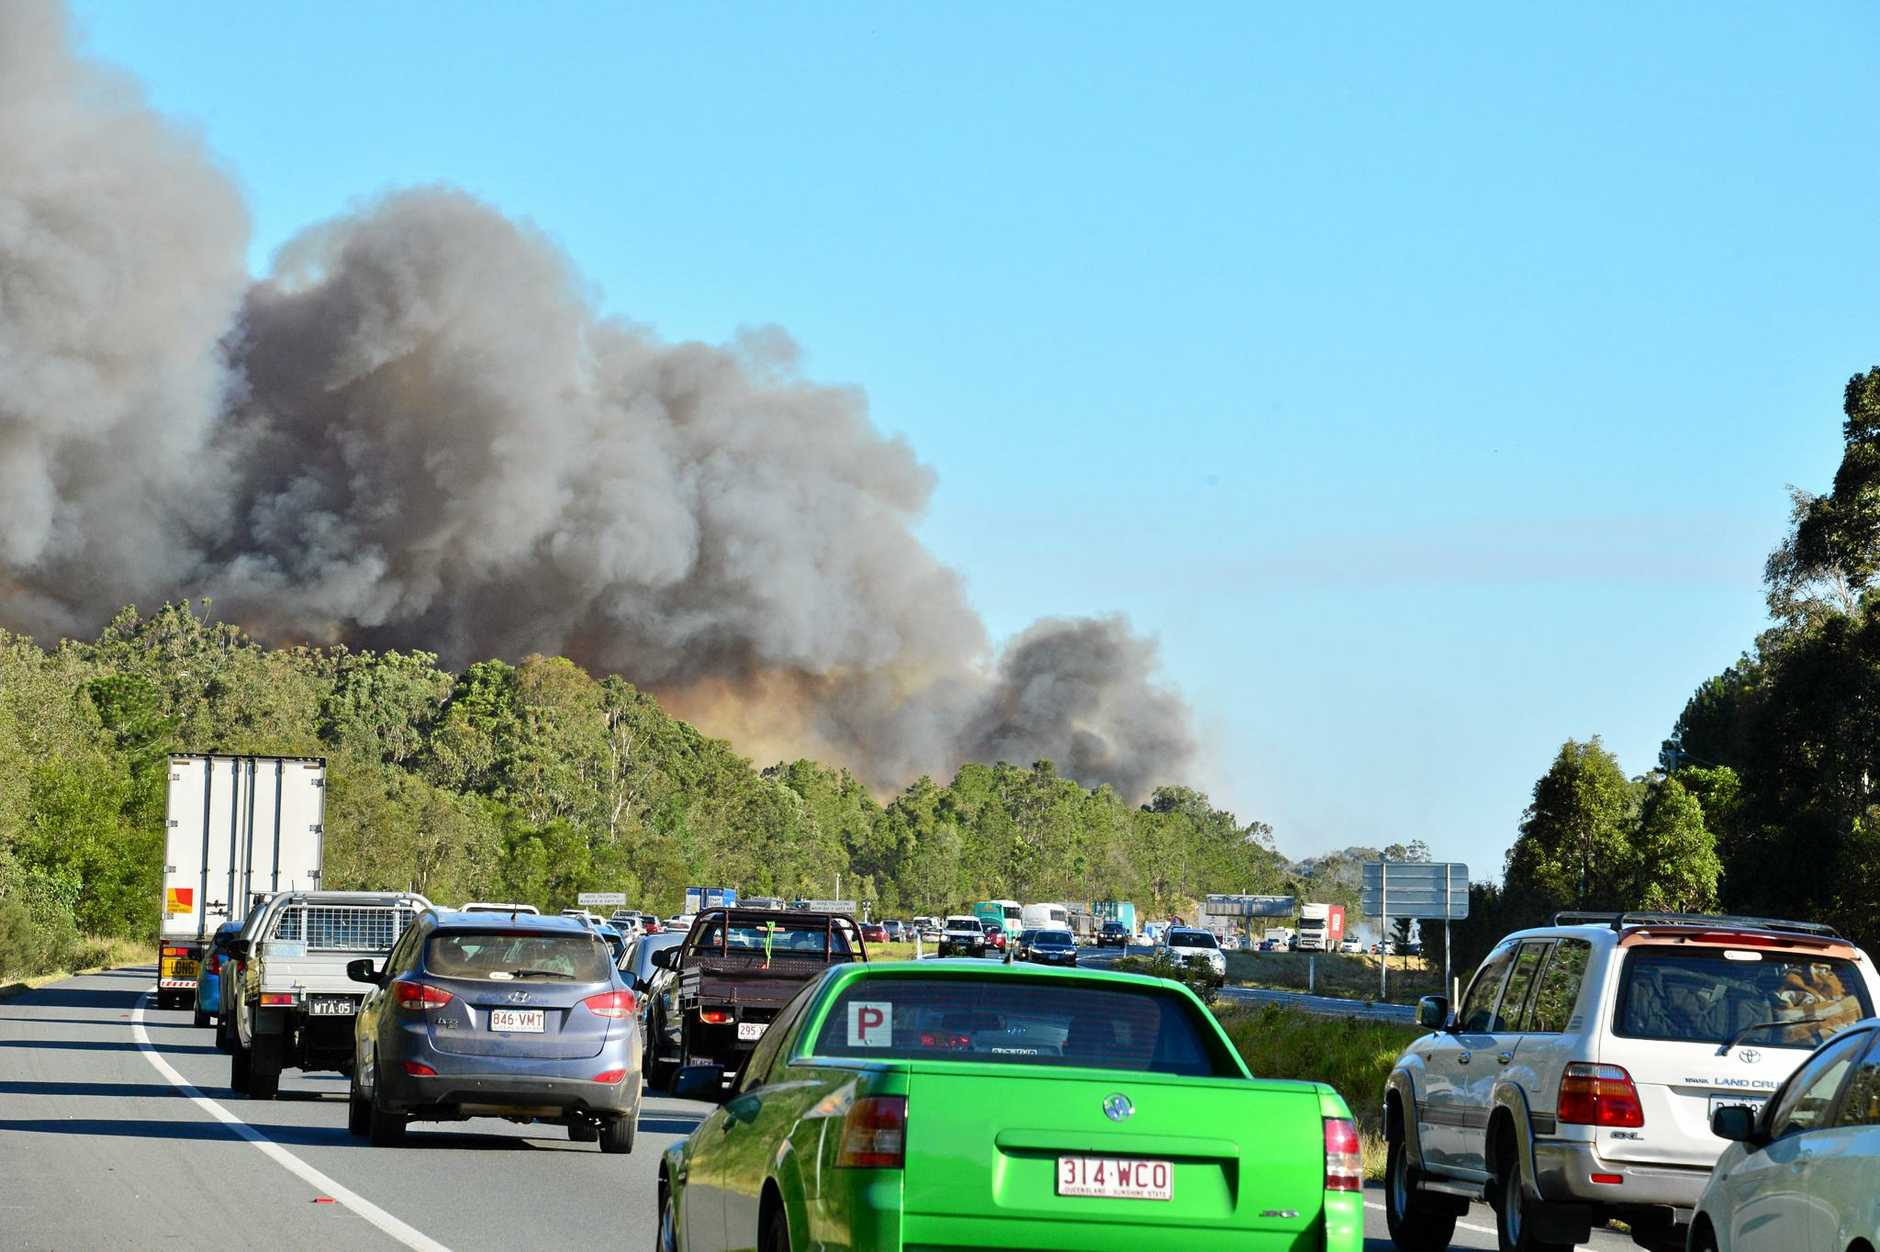 A fire threatens Aura . Residents evacuate. South bound traffic on the Bruce highway slows to a crawl. water bombers fight the fire.